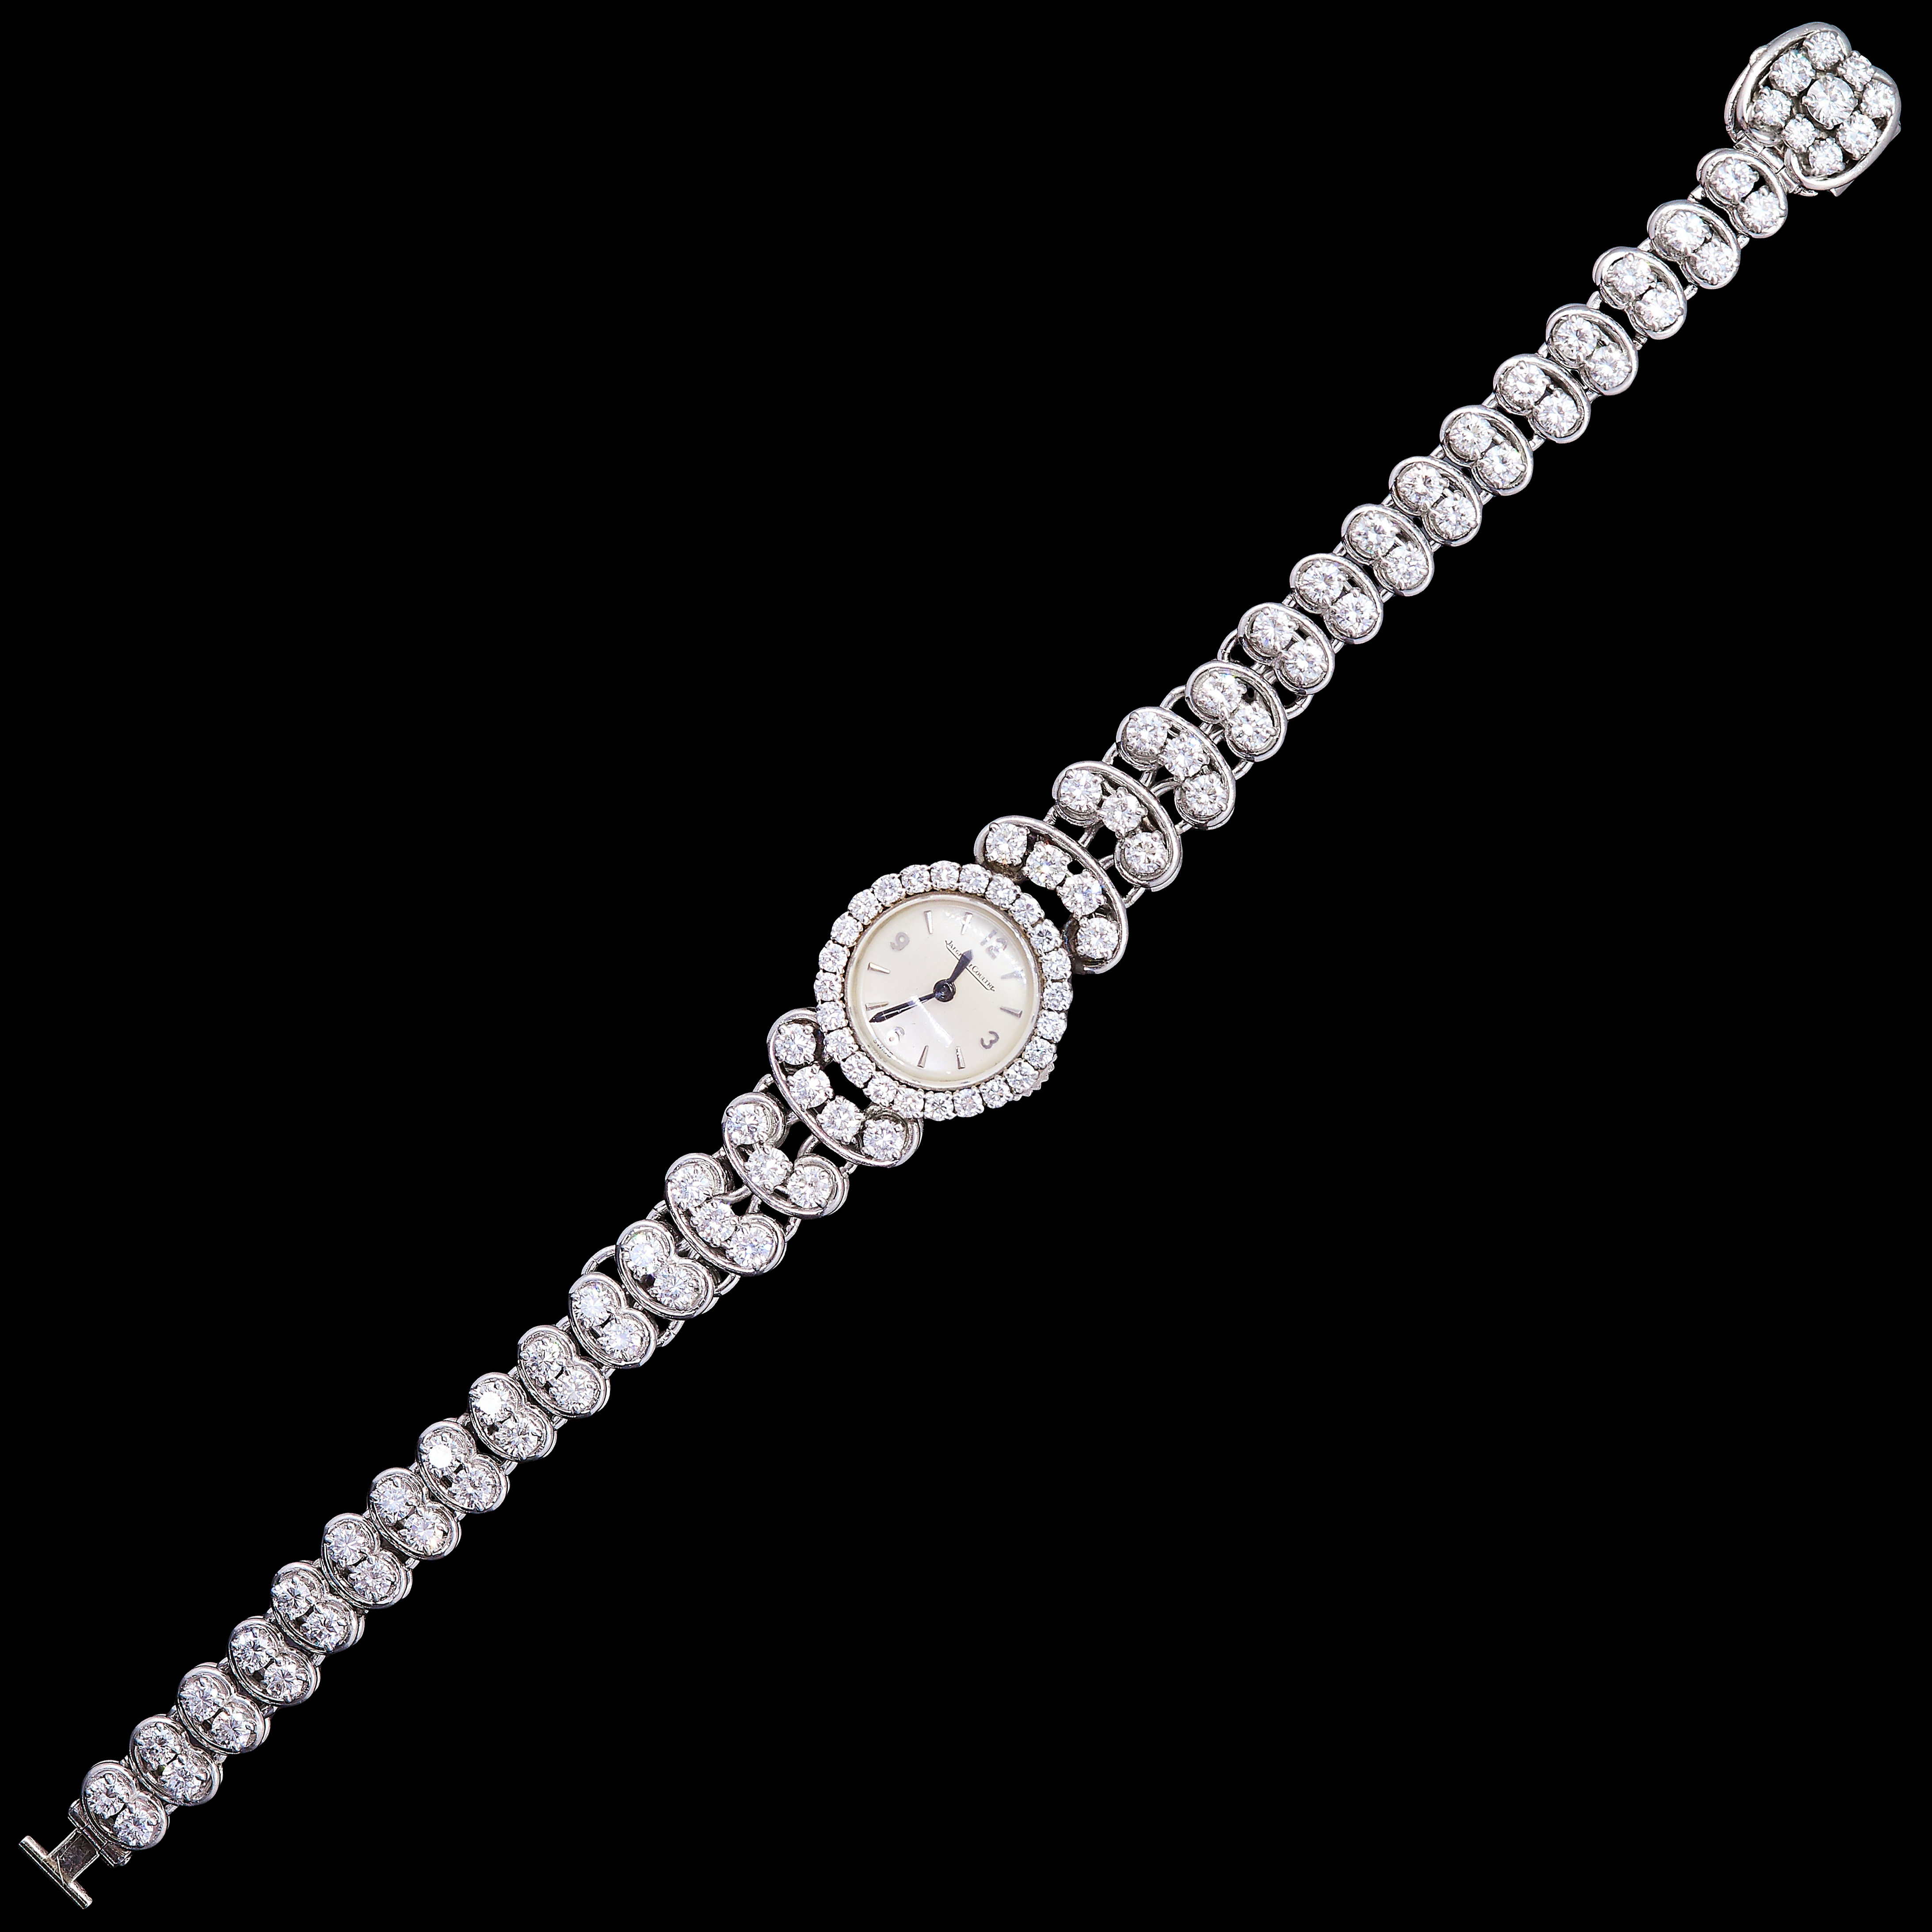 JEAGER-LECOULTRE, DIAMOND DRESS WATCH - Image 2 of 2